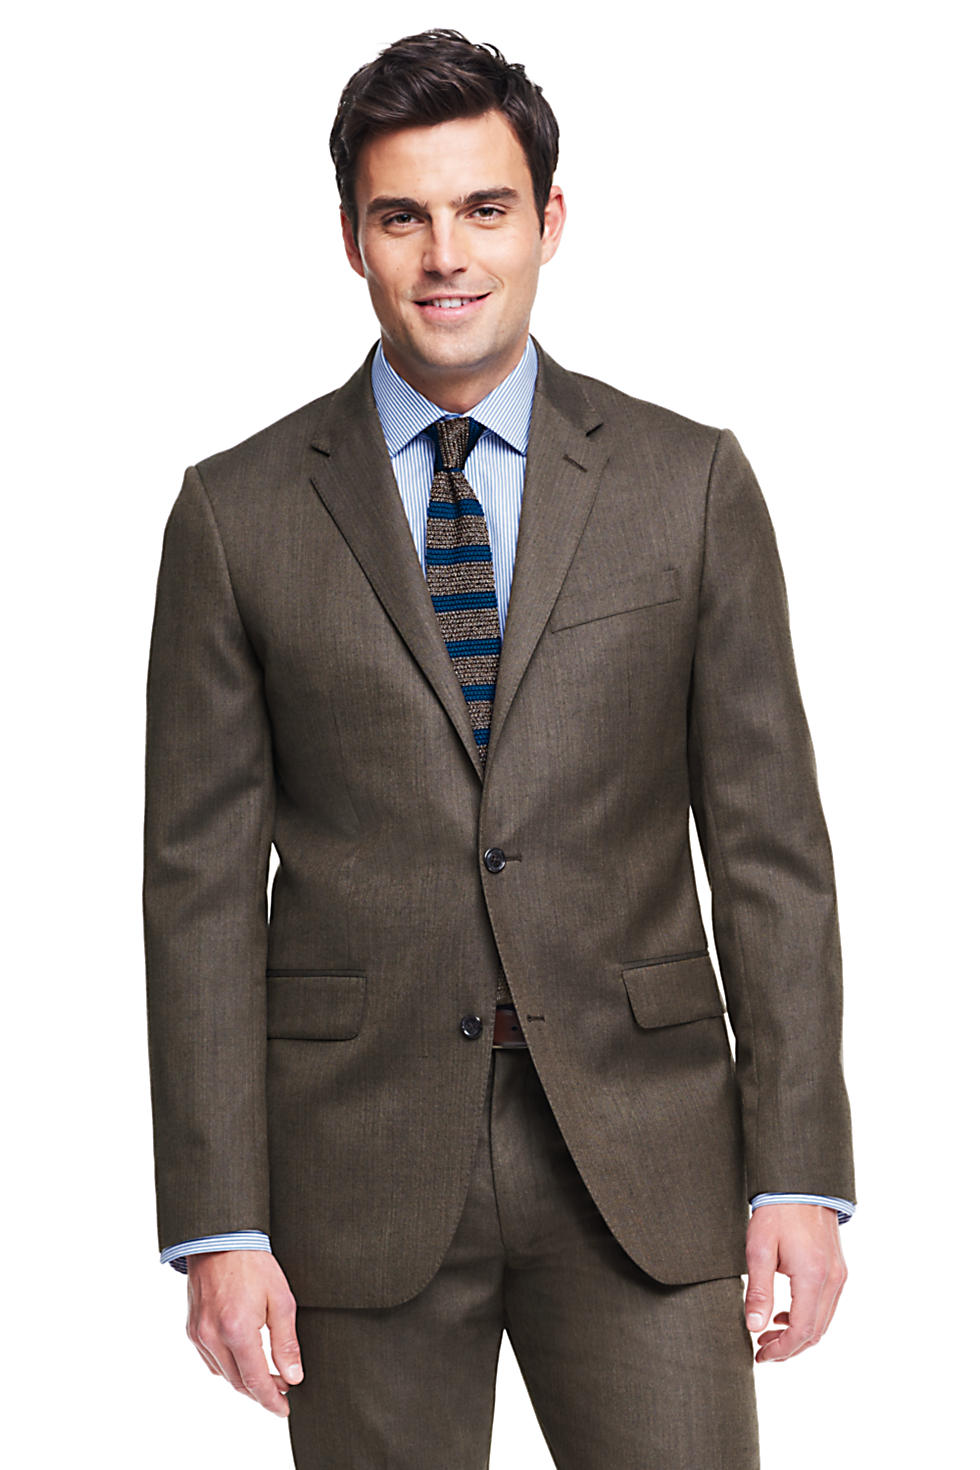 Lands' End Men's Tailored Fit Wool Year'rounder Suit Jacket